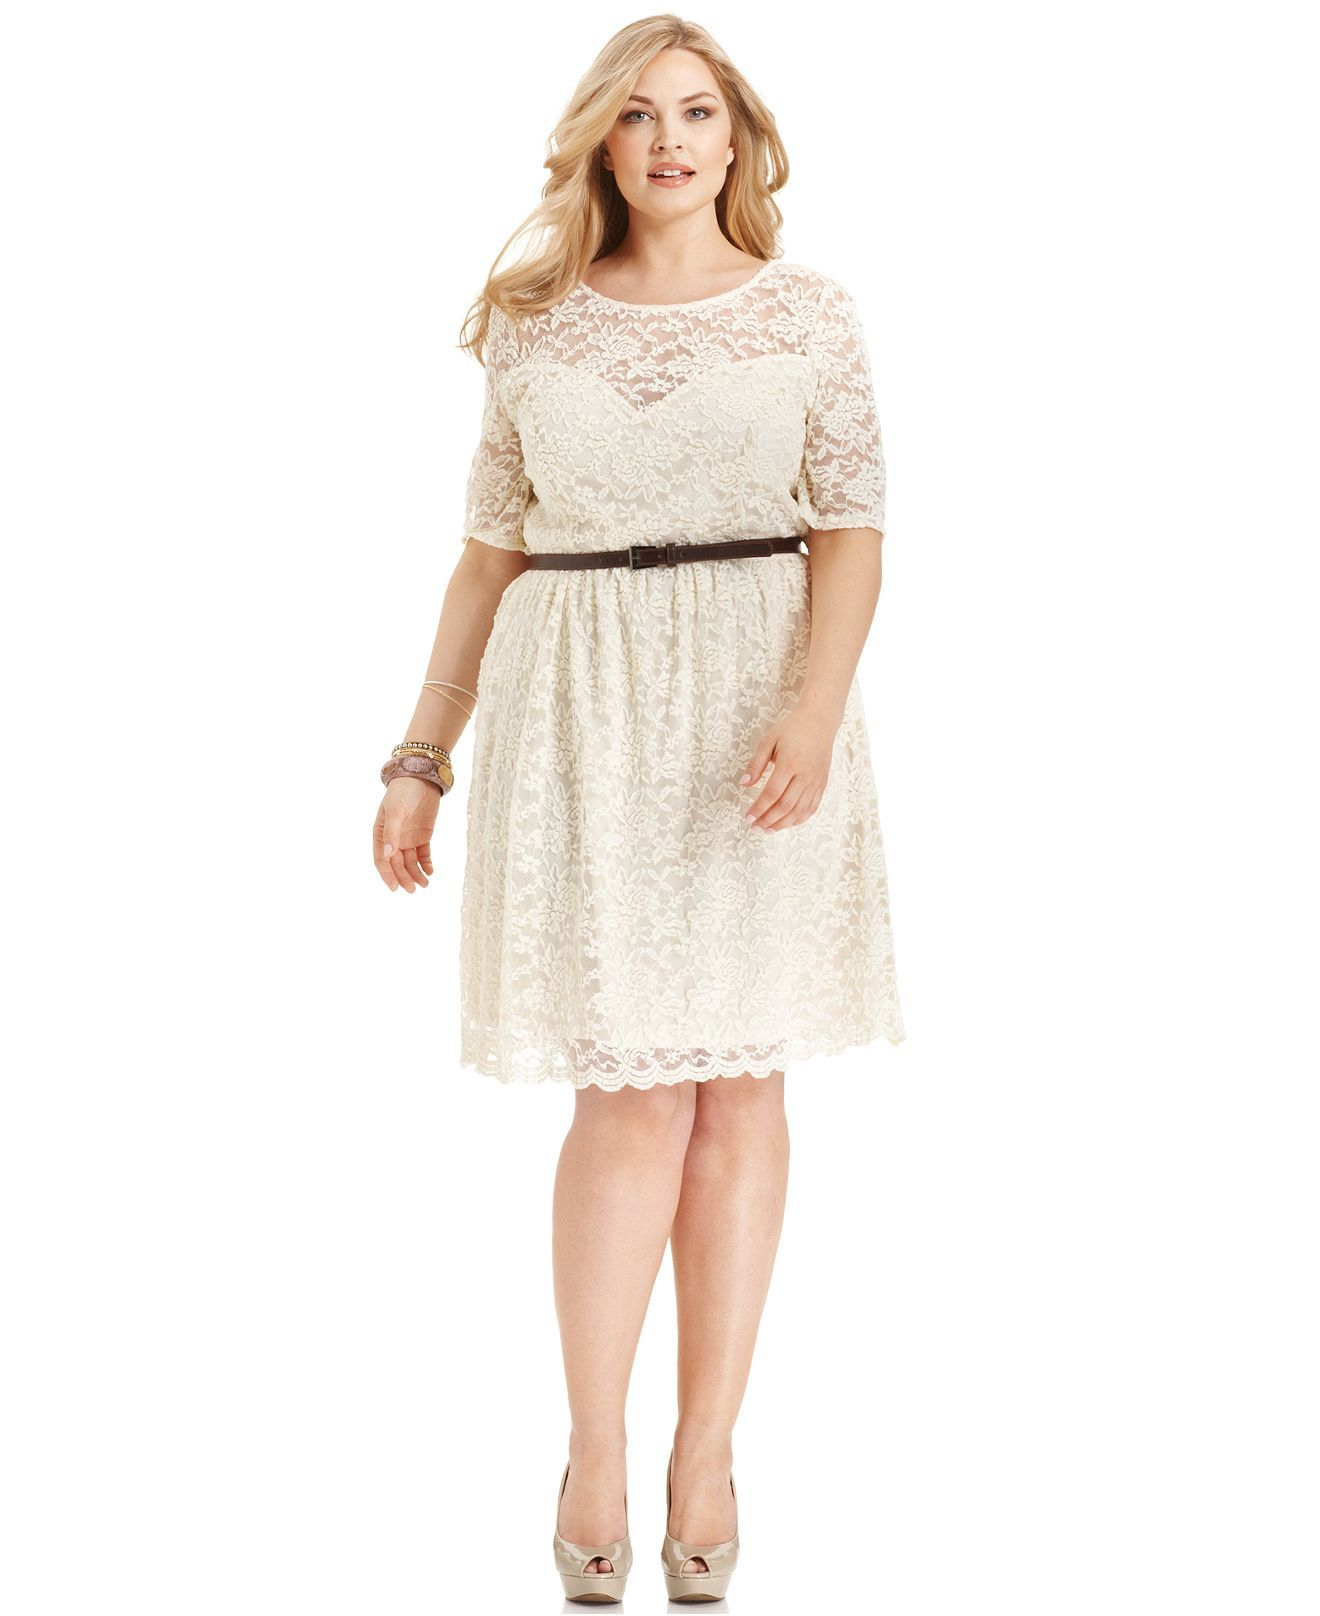 $59.00 American Rag Plus Size Dress, Short-Sleeve Lace ...